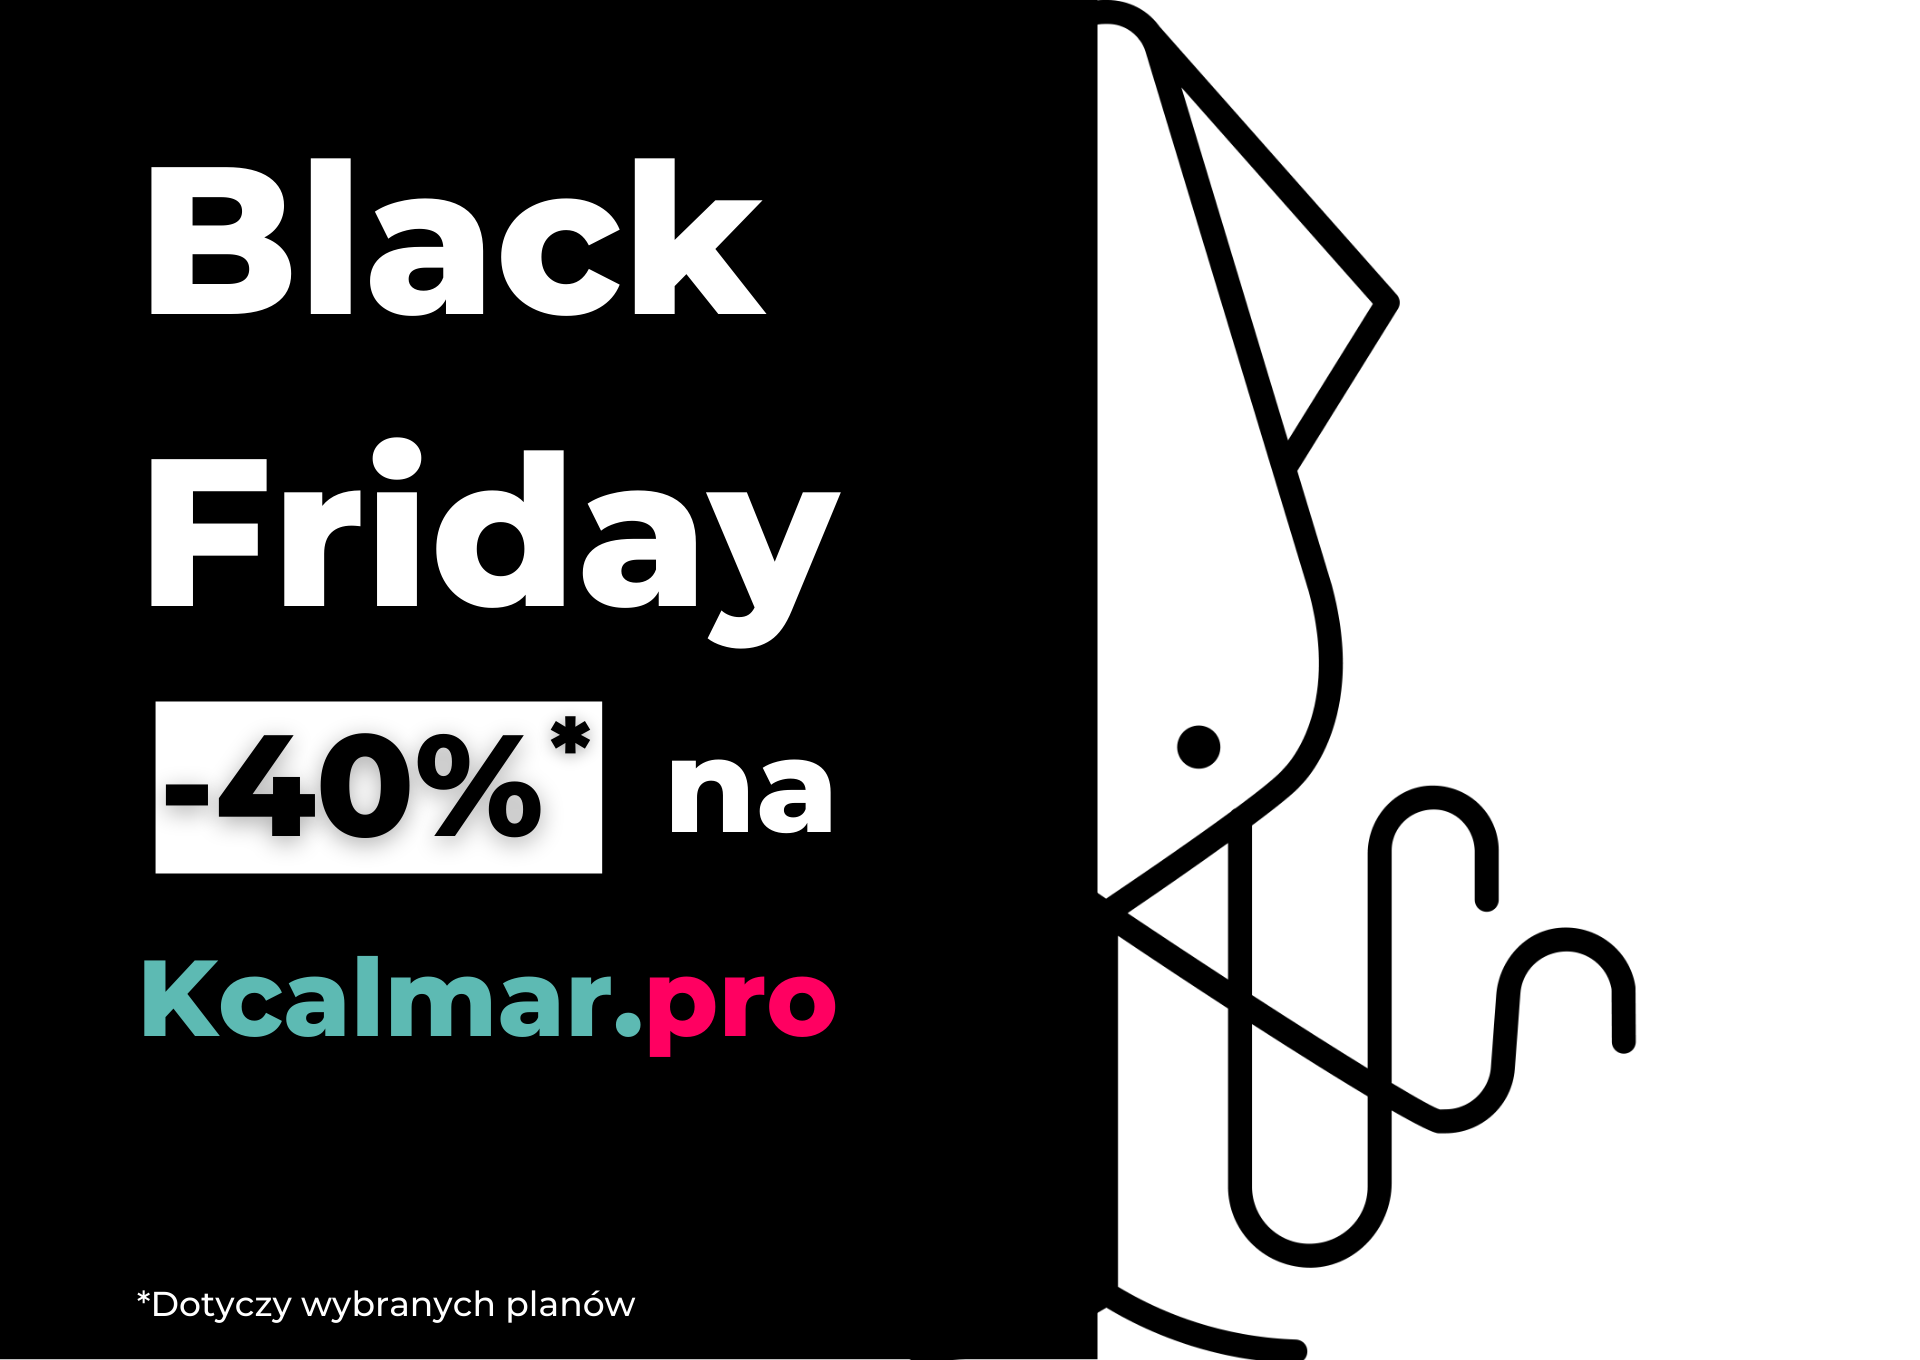 Black Friday w Kcalmar.pro!